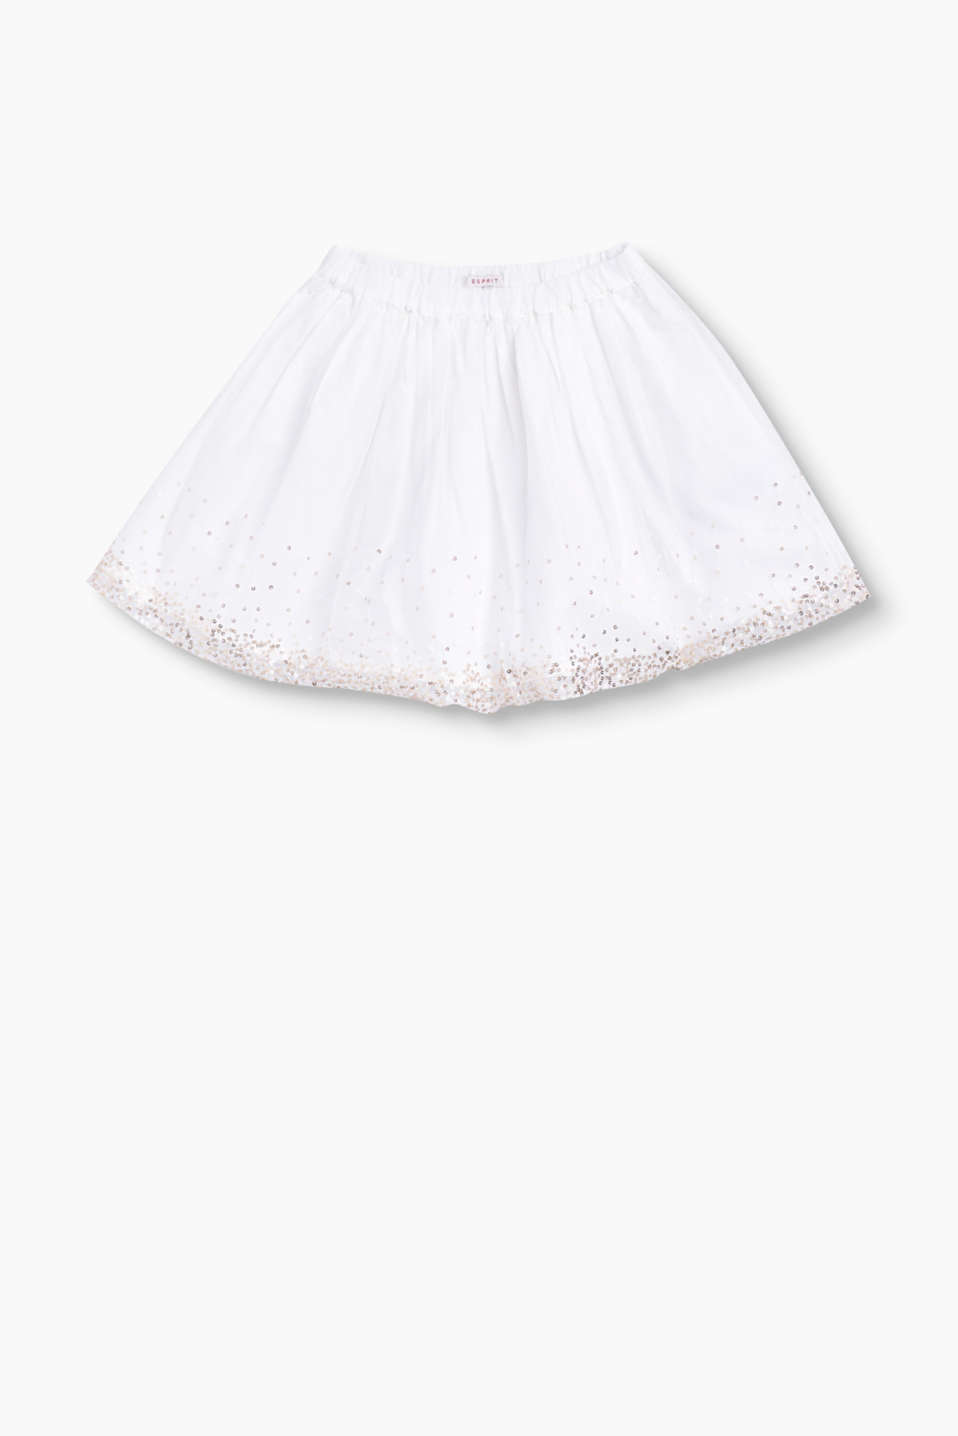 This skirt gets its formal look from the interplay between the tulle and the shimmering sequins.